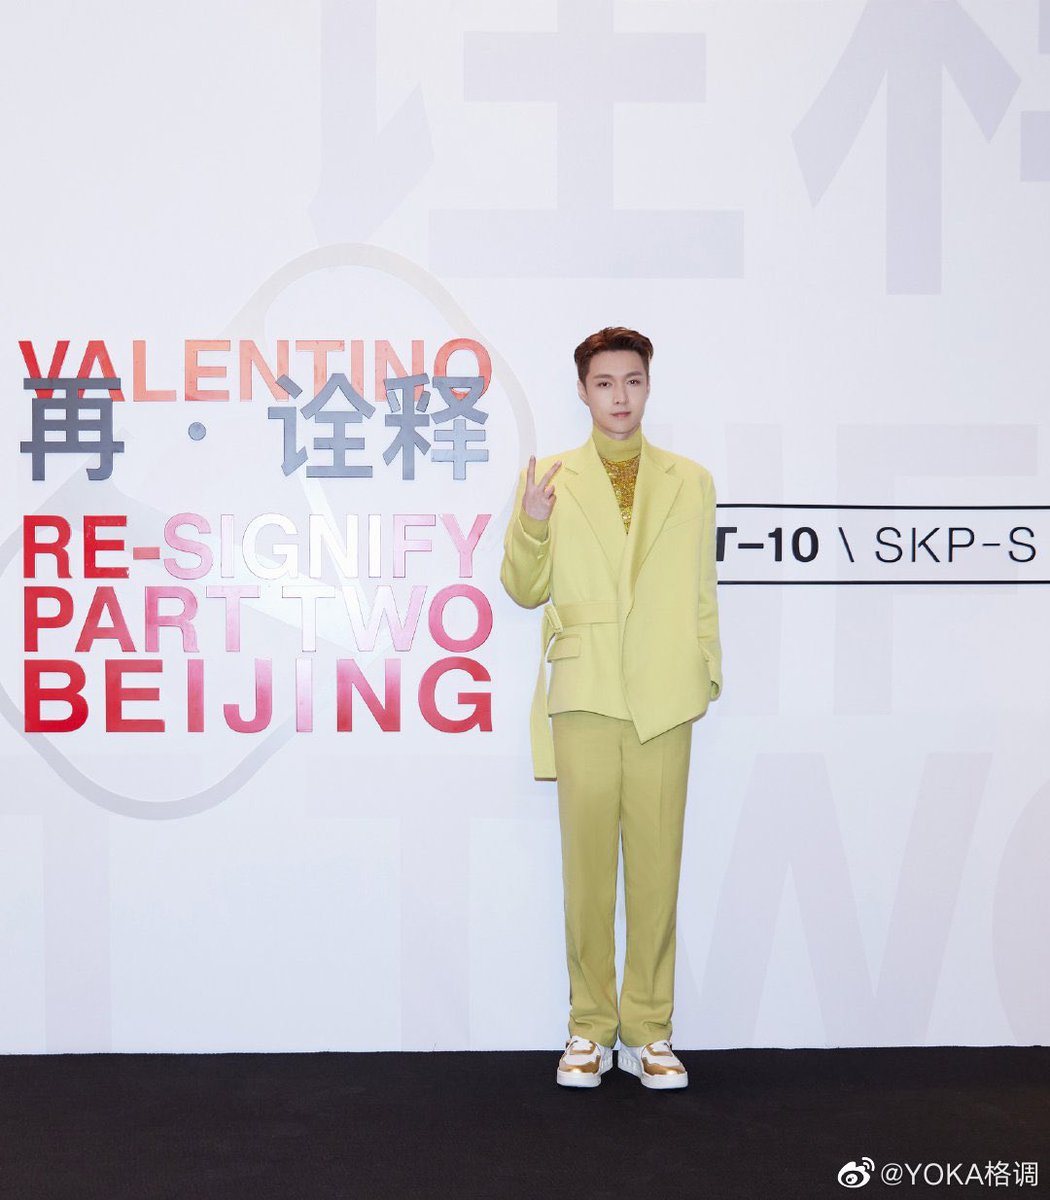 211018 Yixing related 3P 😎😎😎 Yixing at Valentino Re-signify Event cr. logo @layzhang #张艺兴 #ZhangYixing @MaisonValentino